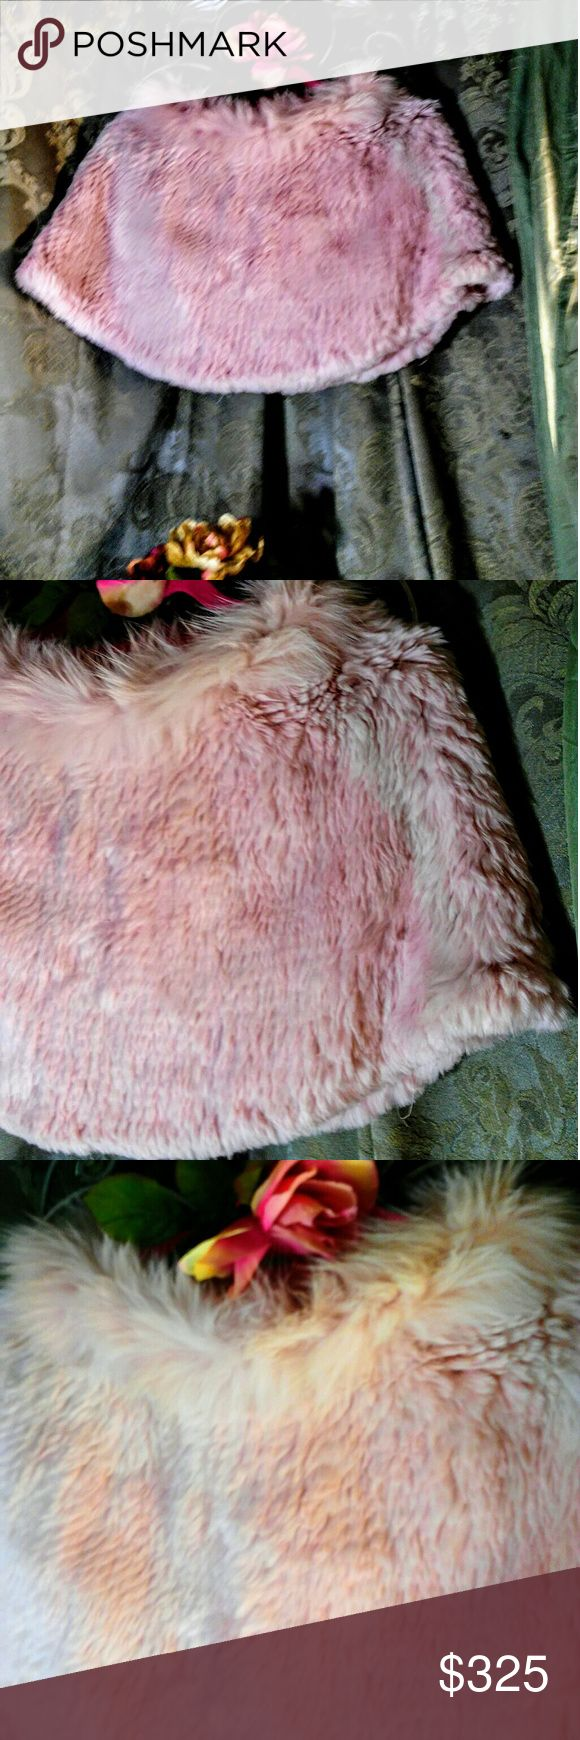 RARE!! IL FAIT FROID  AUTHENTIC VINTAGE FUR SHRUG THIS IS MY FAVORITE THING!  French vintage IL Fait Froid blush 100% fox fur with a 100% rabbit collar! Condition is Christine. One size. Has been stored and cared for correctly. IL Fait Froid Sweaters Shrugs & Ponchos